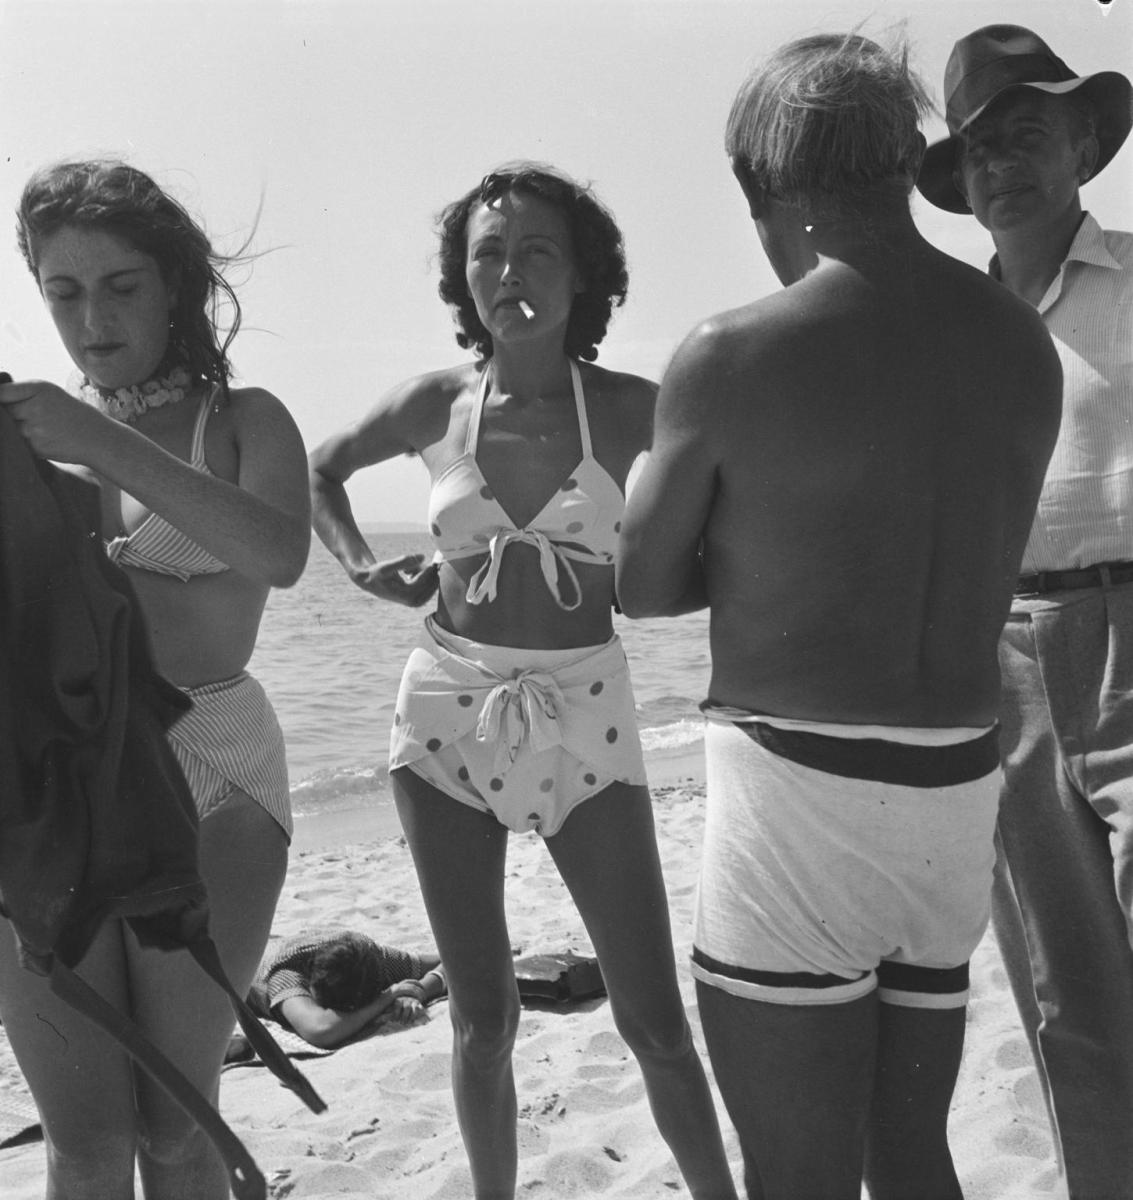 On The Beach: Dora Maar, Nusch Éluard, Pablo Picasso and Paul Éluard (1937)